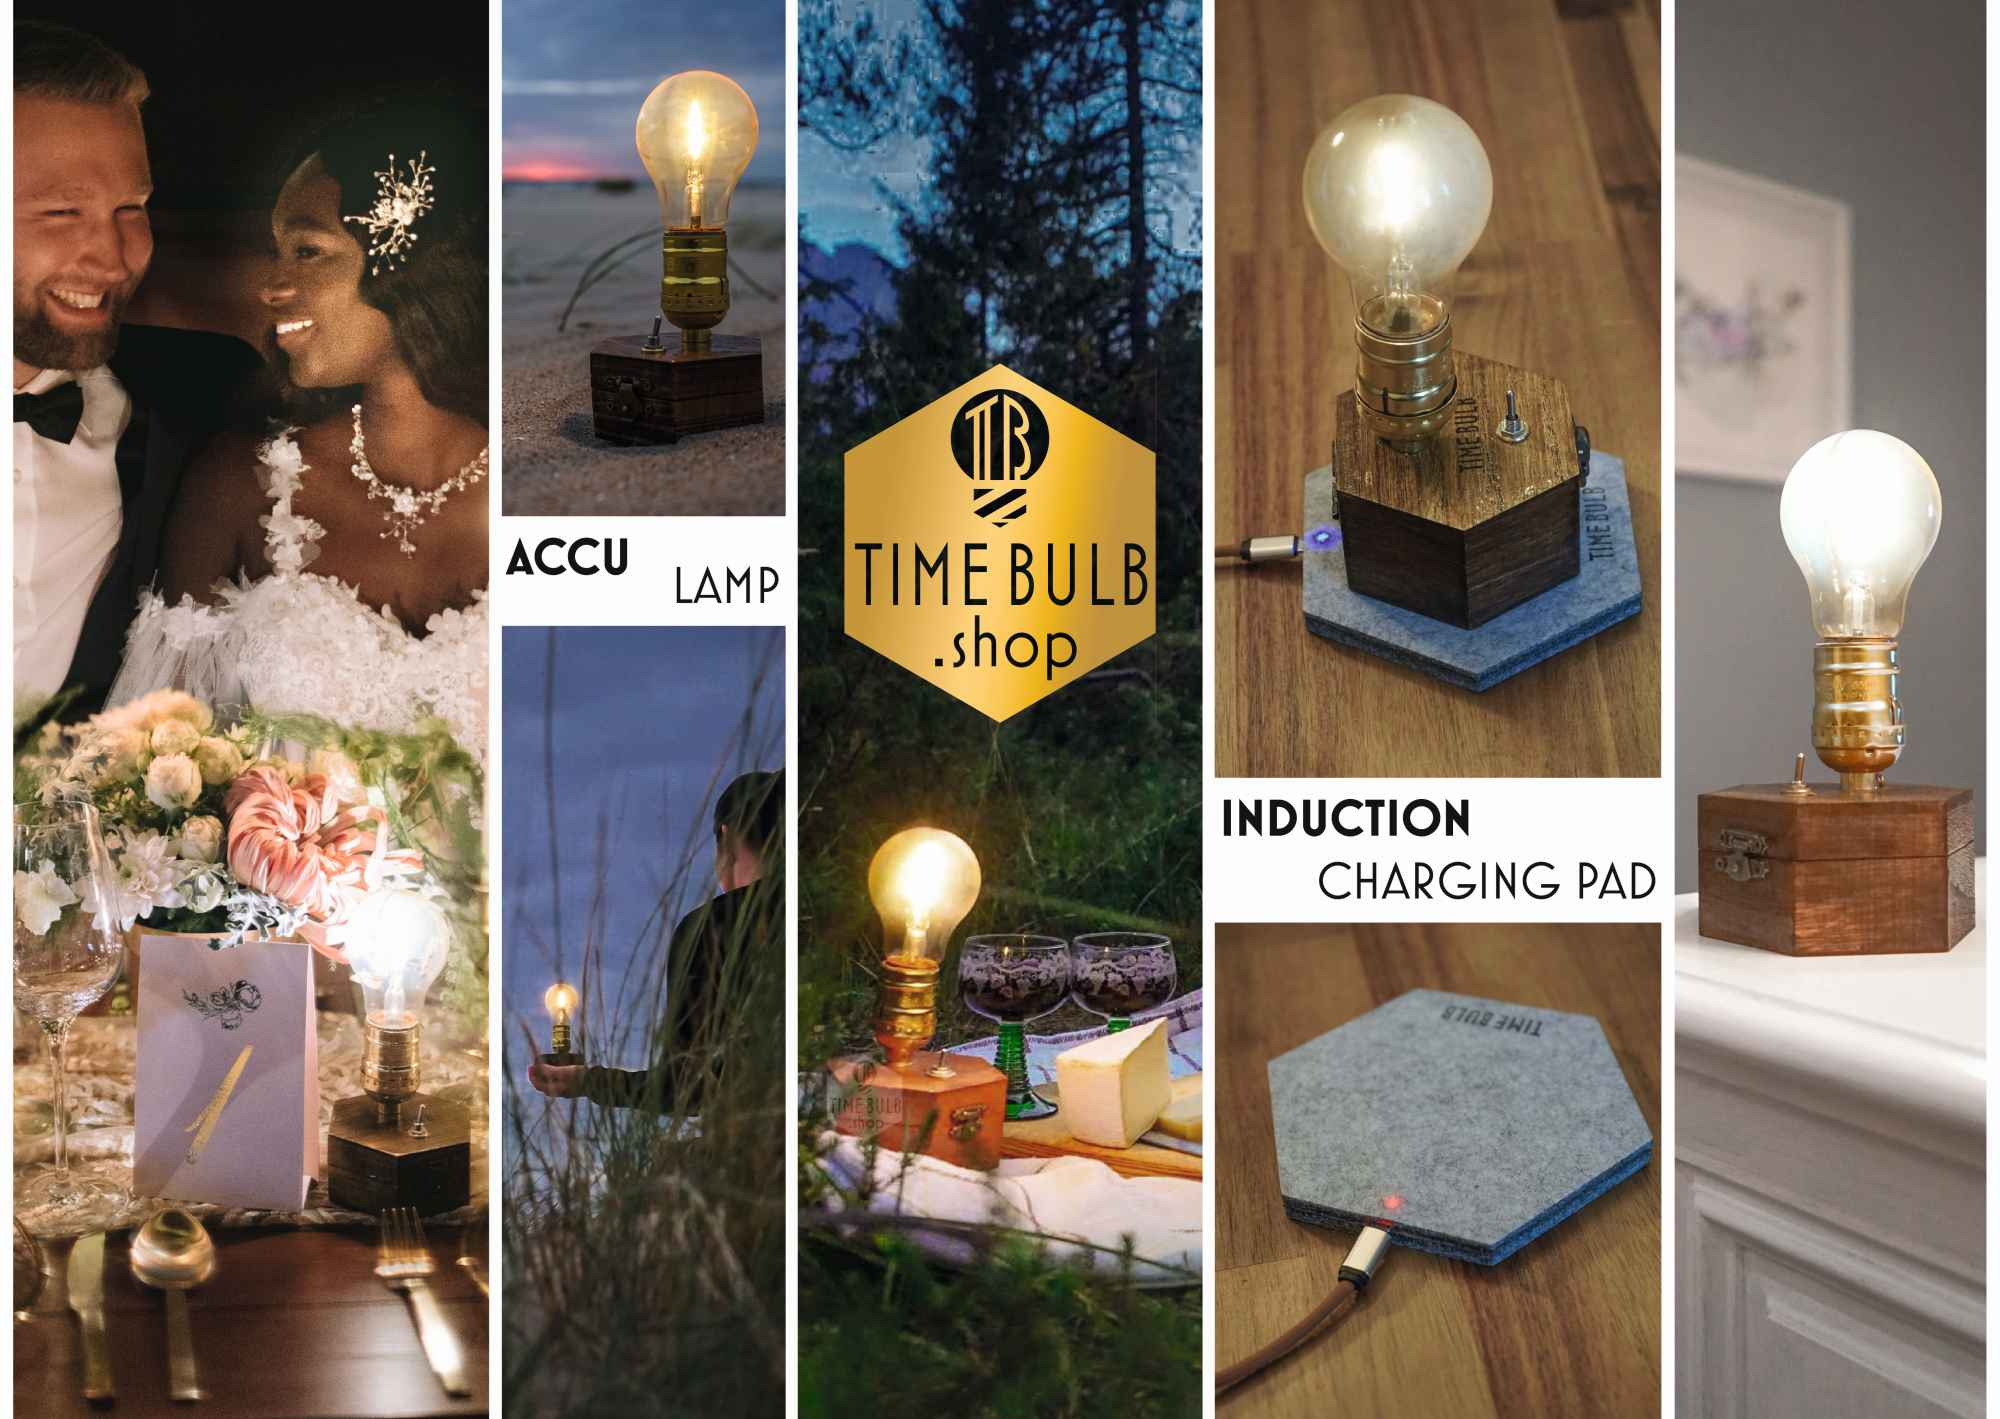 TimeBulb-wireless-charging-table-lamp-cordless-edison-bulb-light-vintage-wedding-trends-2021-2022-qi-induction-charger-rechargeable-acculamp-kabellose-akkulampe-decoration-interior-design-candlelight